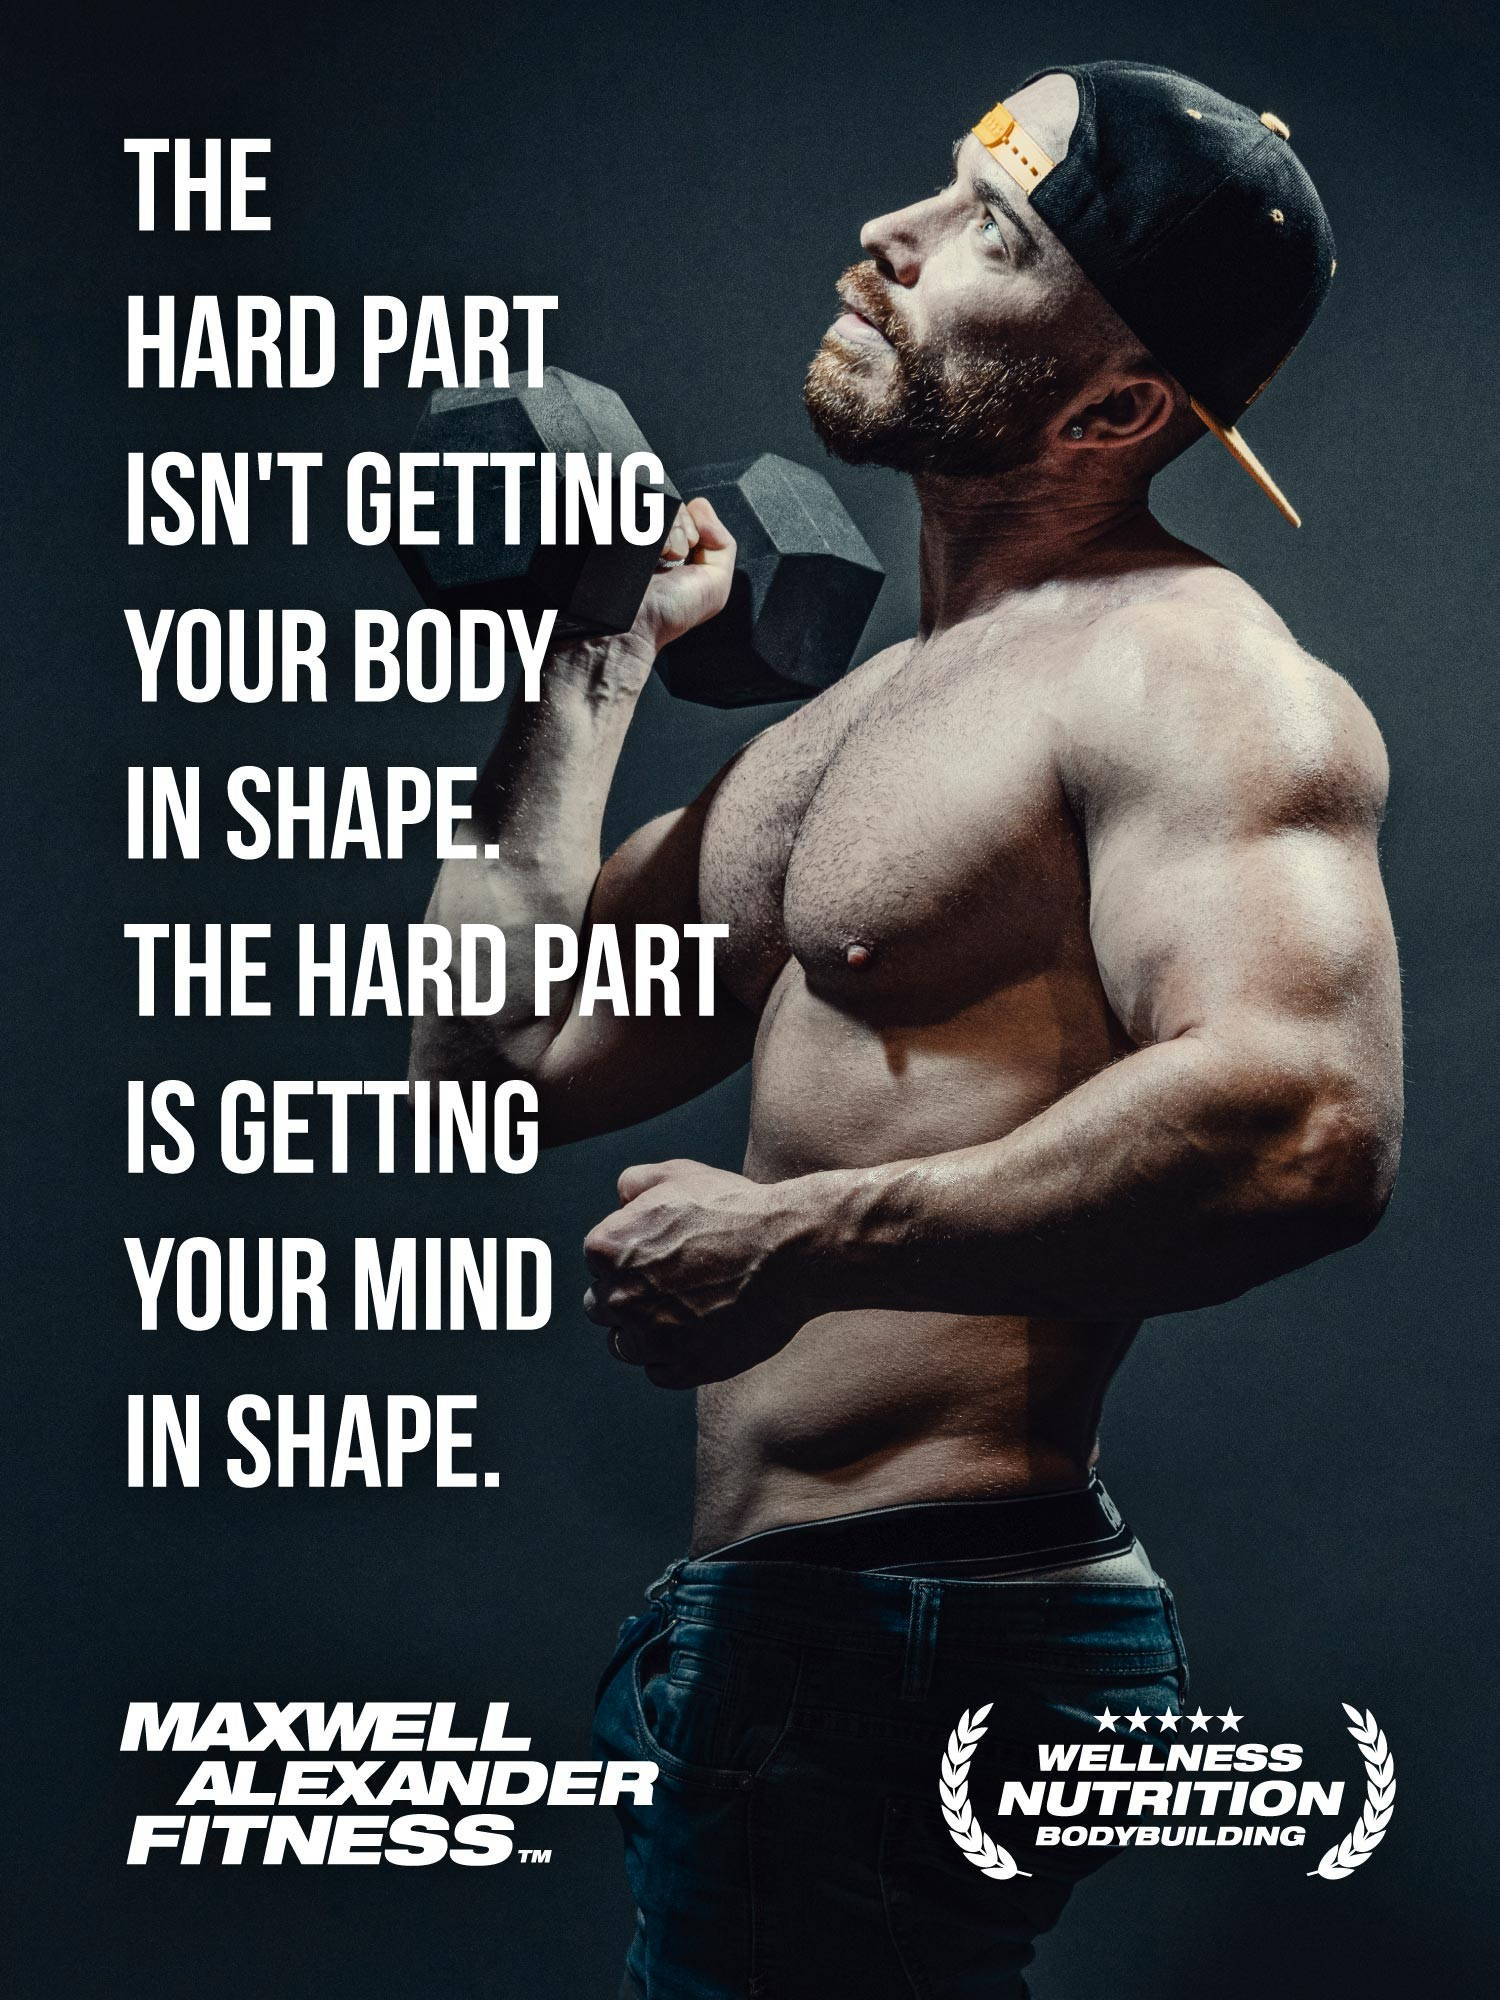 Fitness Motivation with Bodybuilding Coach Maxwell Alexander